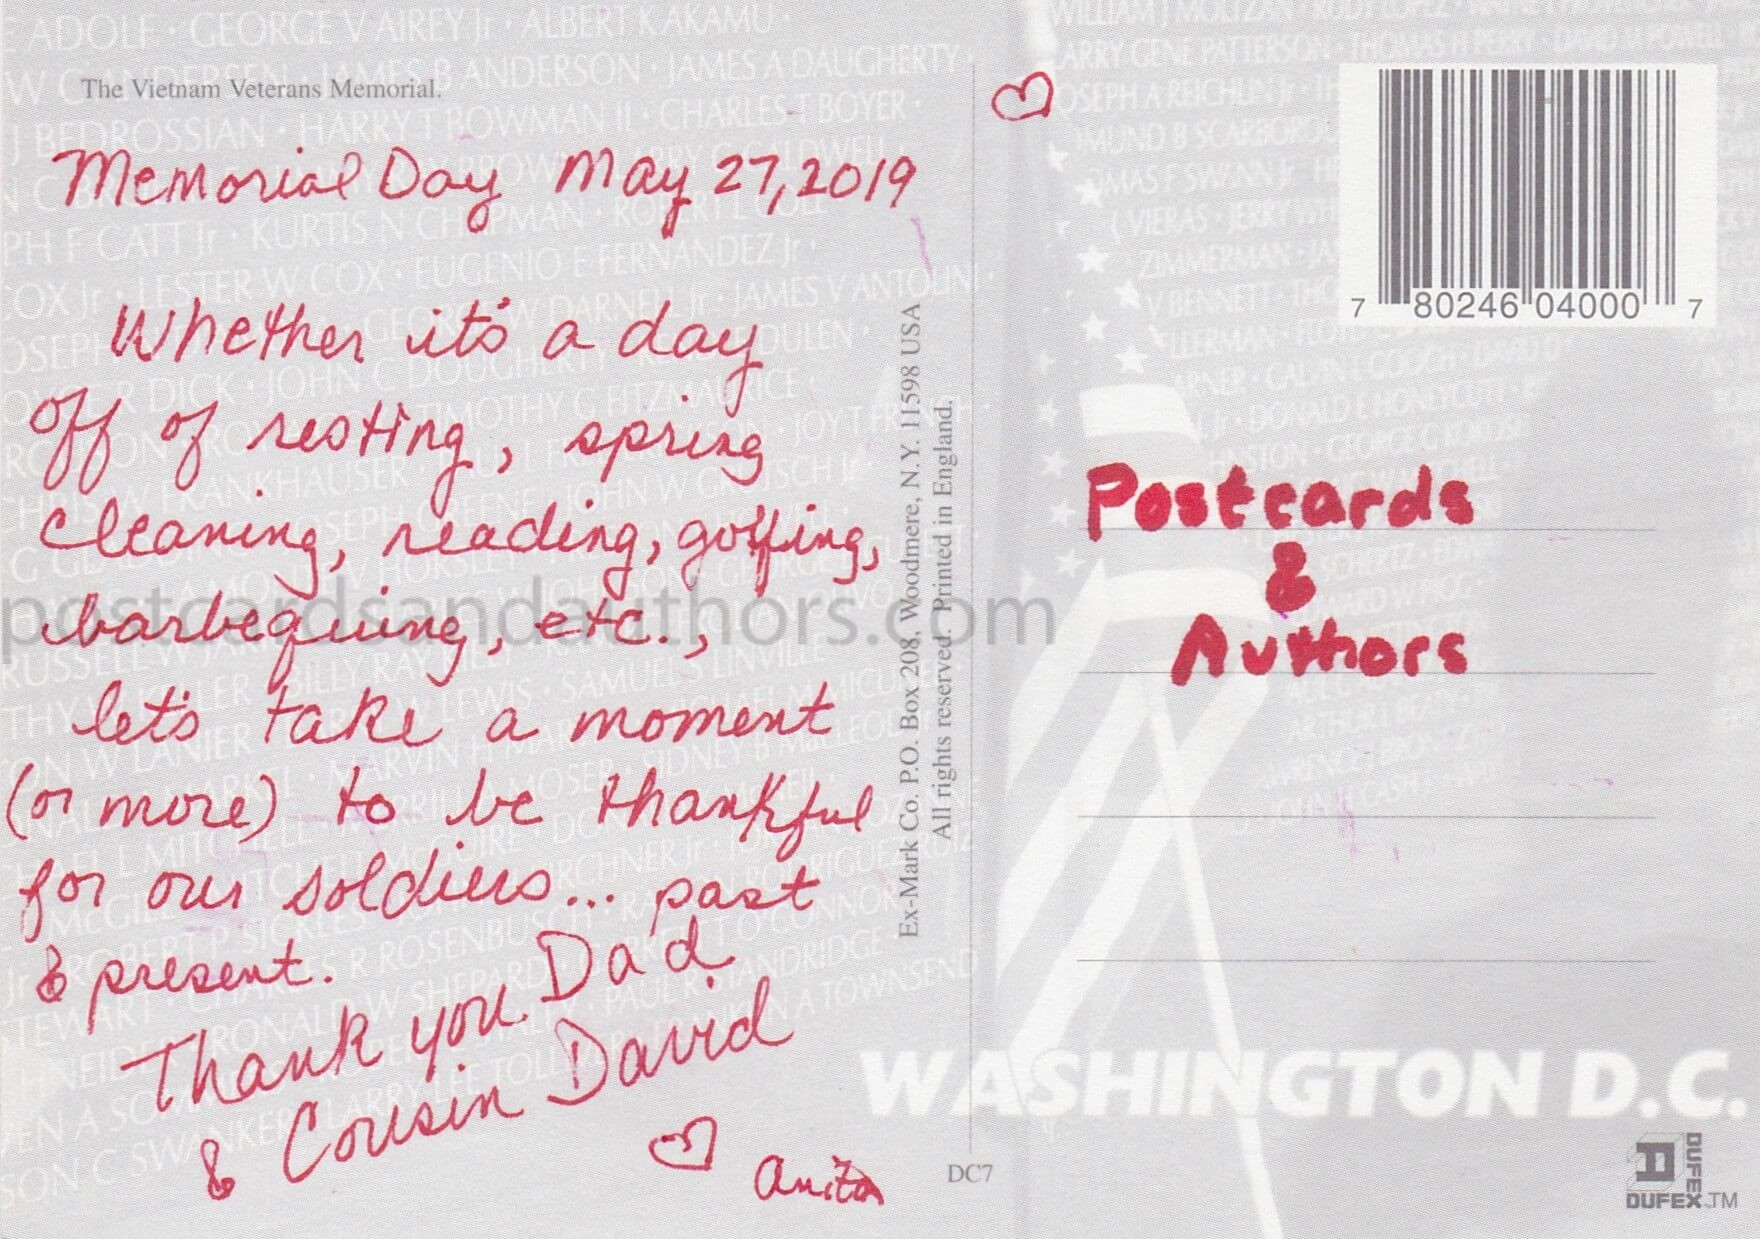 Postcards and Authors 3T